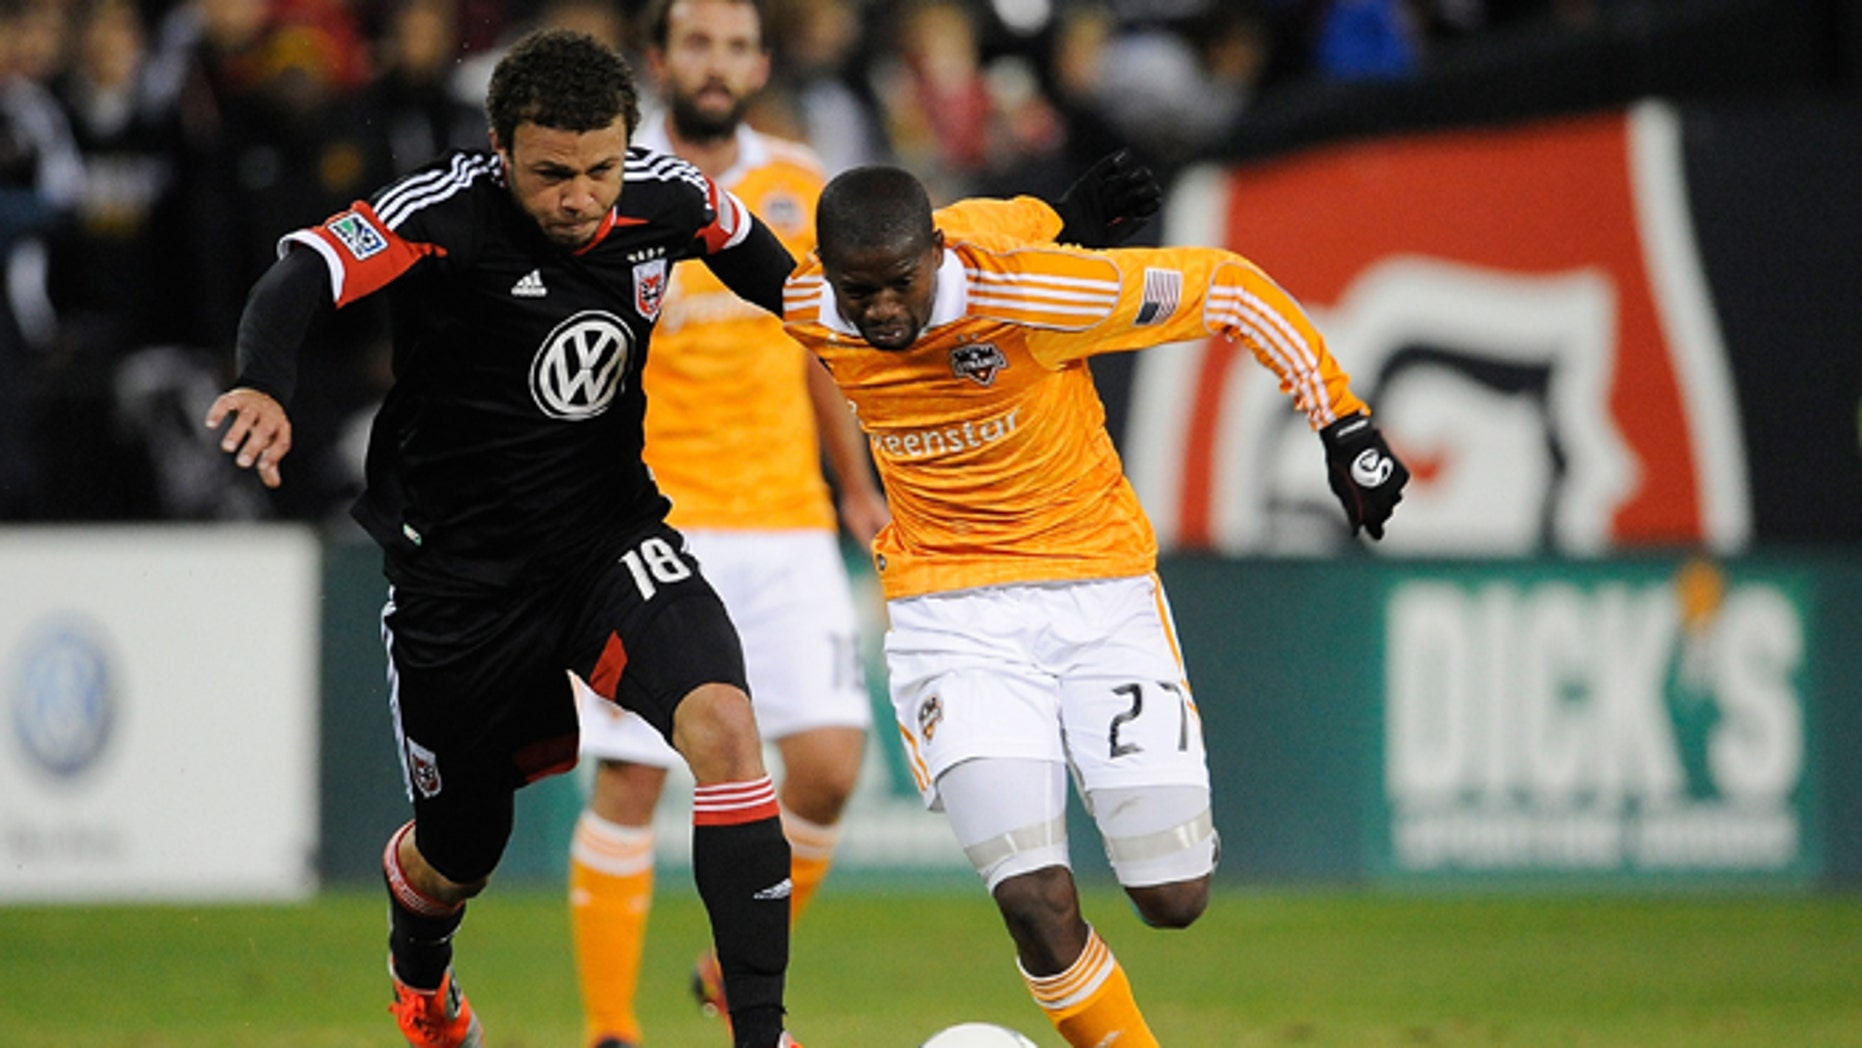 WASHINGTON, DC - NOVEMBER 18:  Boniek Garcia #27 of Houston Dynamo battles for the ball against Nick DeLeon #18 of D.C. United during leg 2 of the Eastern Conference Championship at RFK Stadium on November 18, 2012 in Washington, DC.  (Photo by Patrick McDermott/Getty Images)